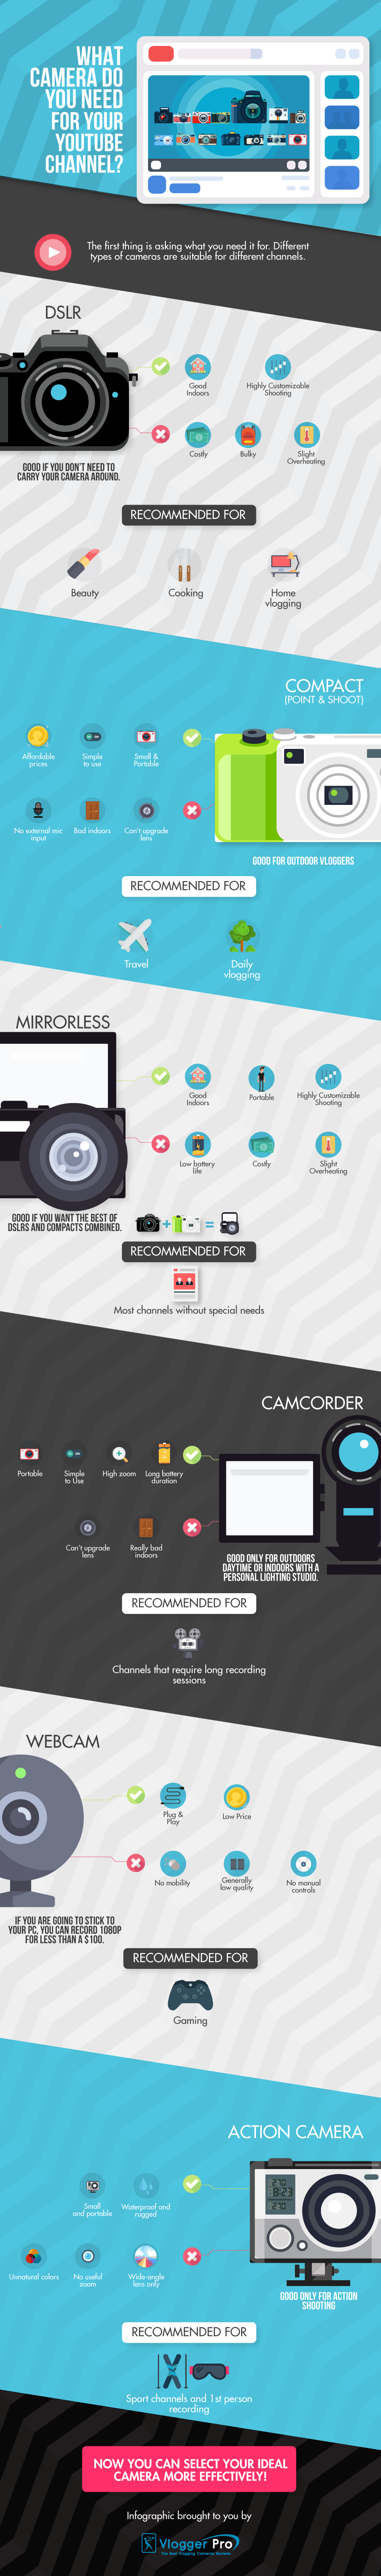 14 Best Camera Options For Your YouTube Channel - Infographic